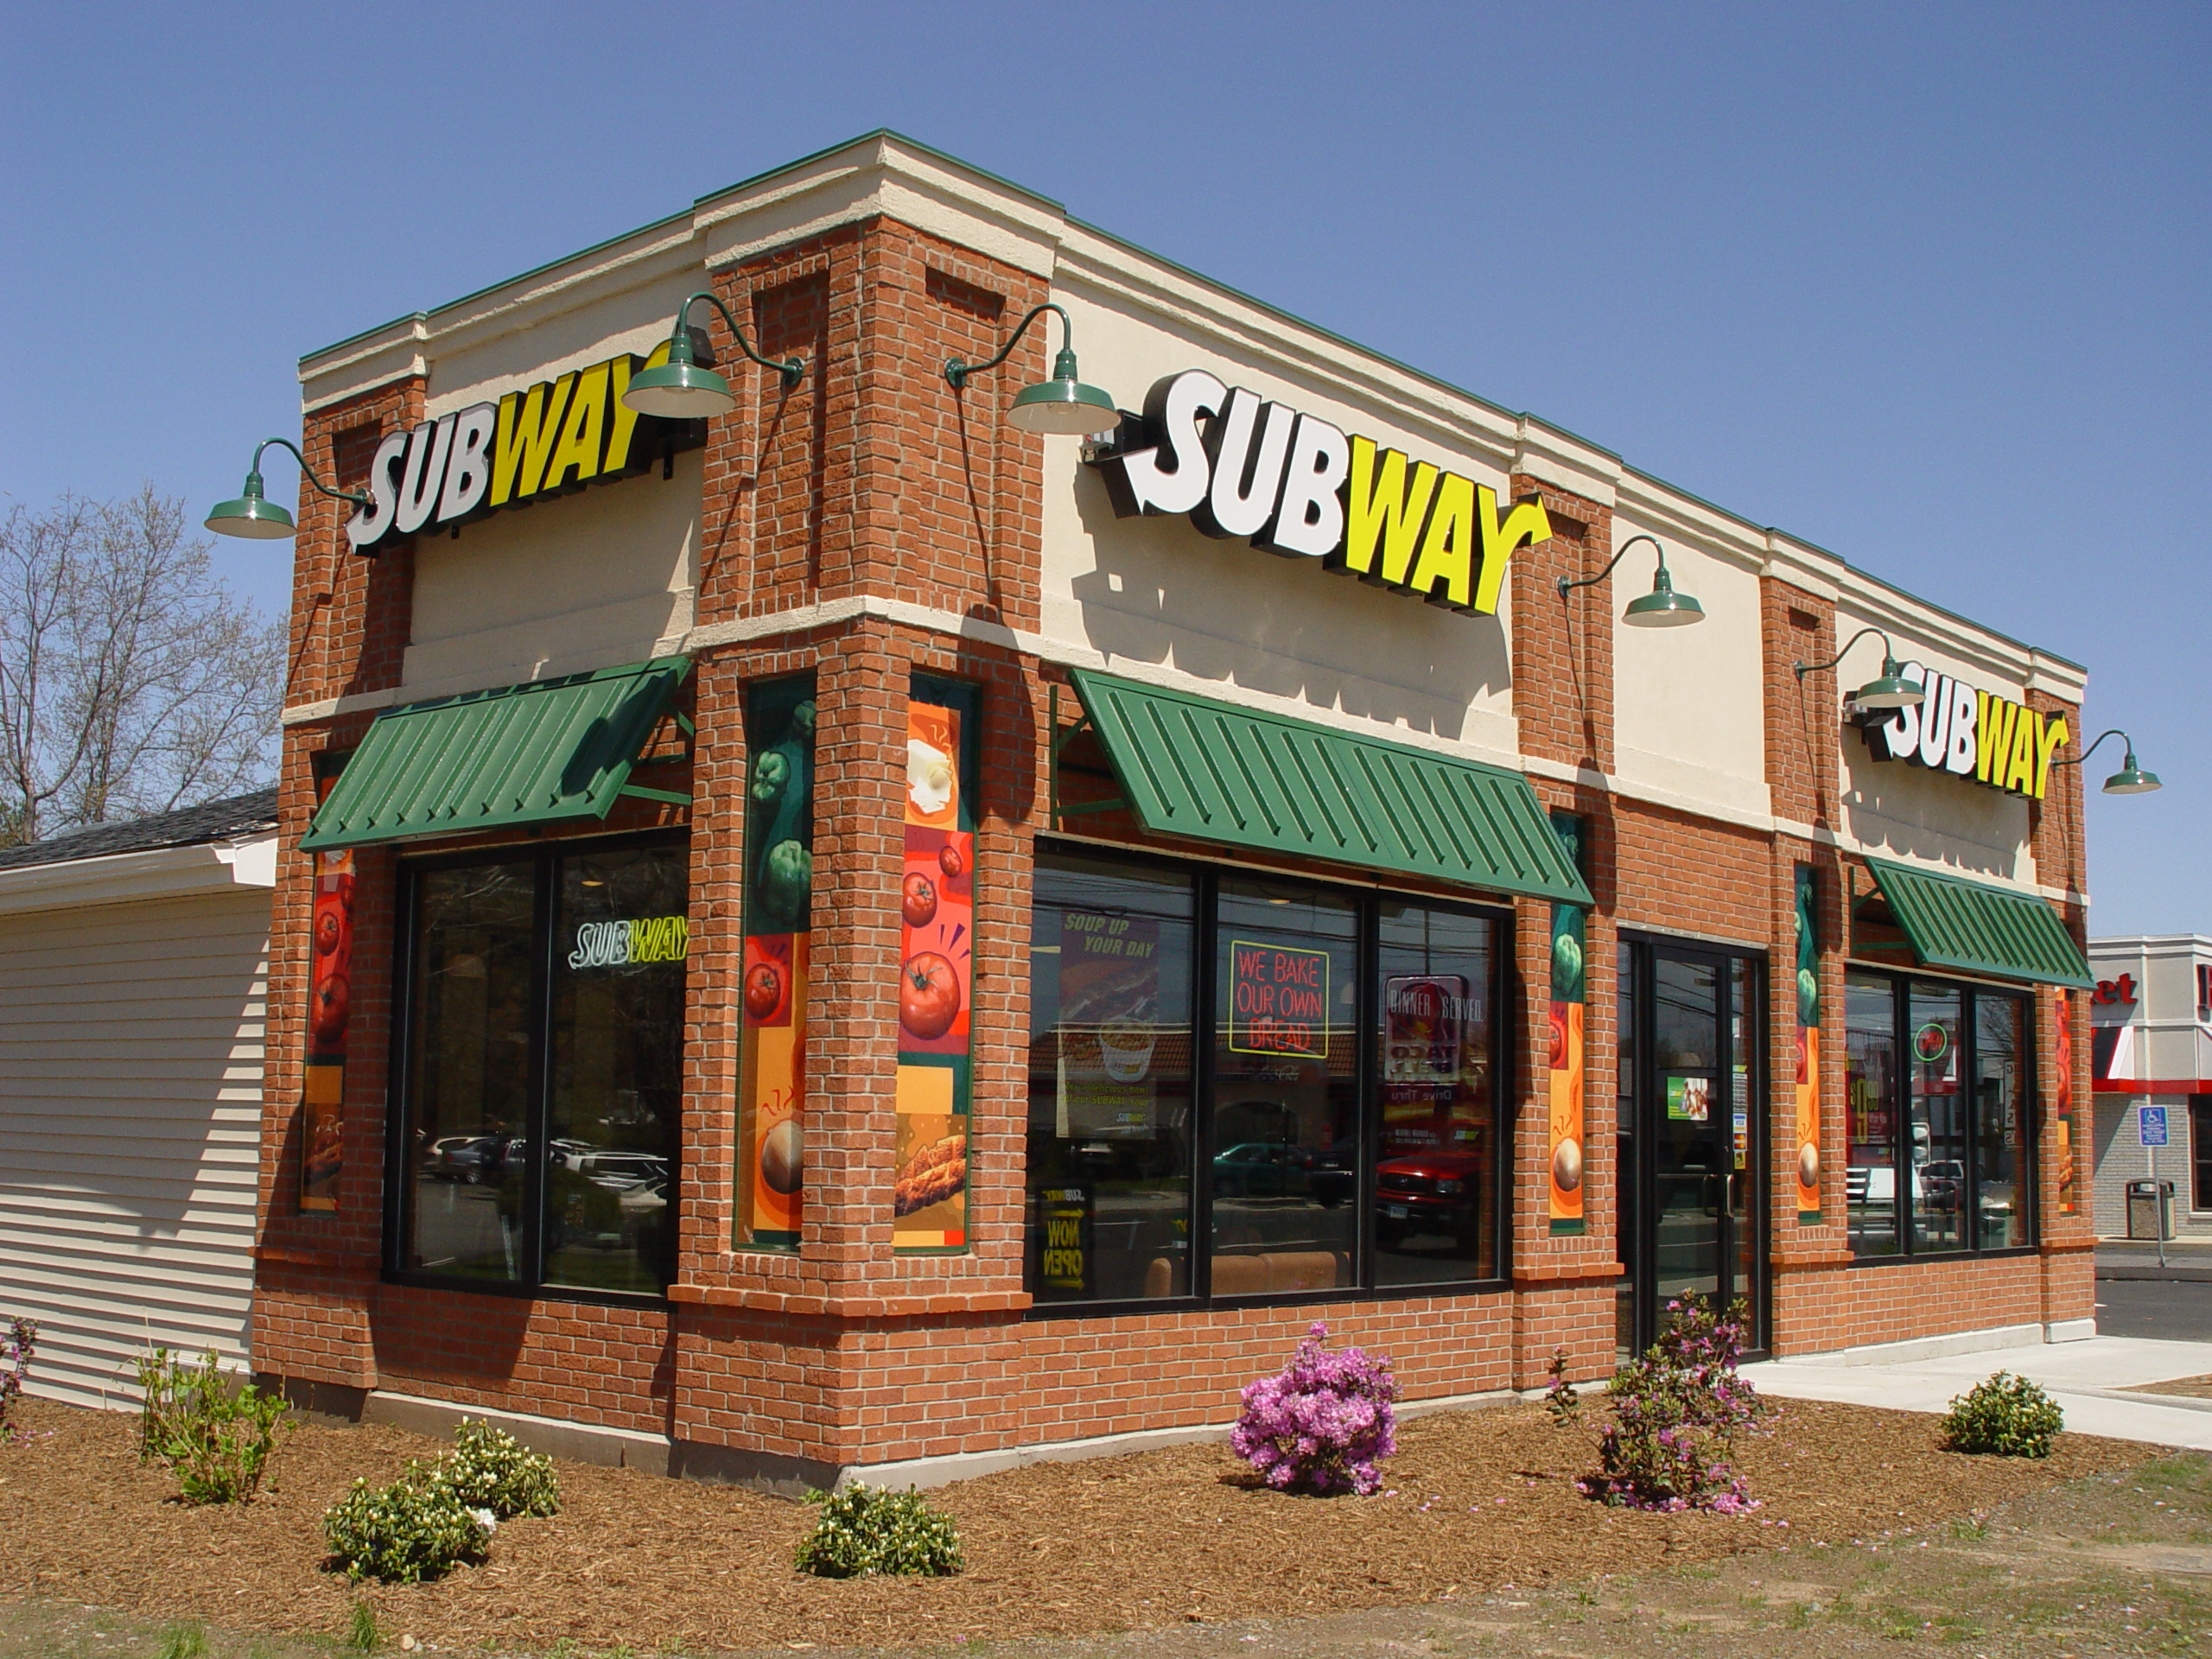 Subway, Columbia SC